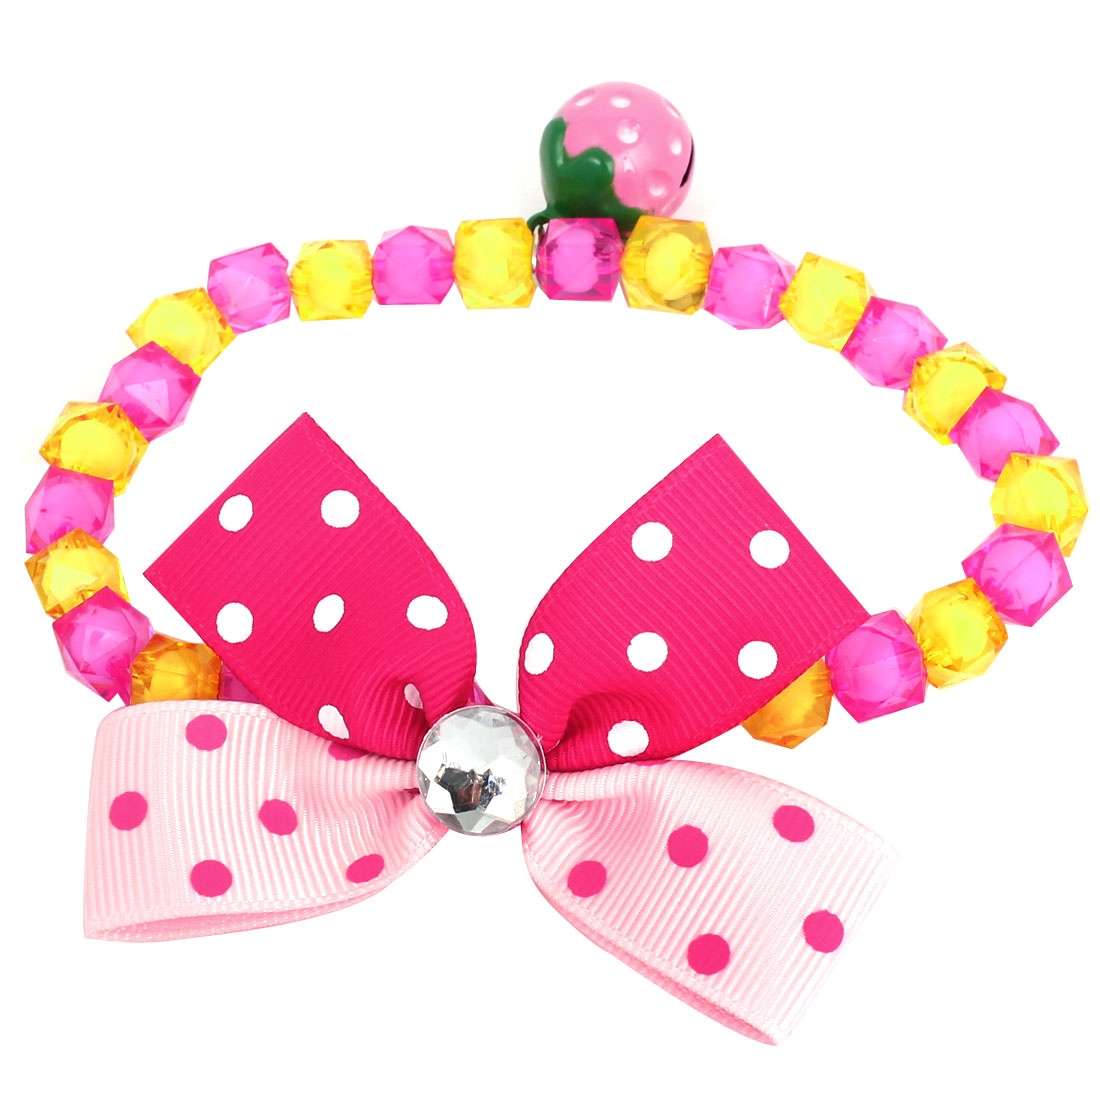 Metal Bell Pendant Bowtie Accent Pet Dog Plastic Beads Collar Necklace Fuchsia Yellow S